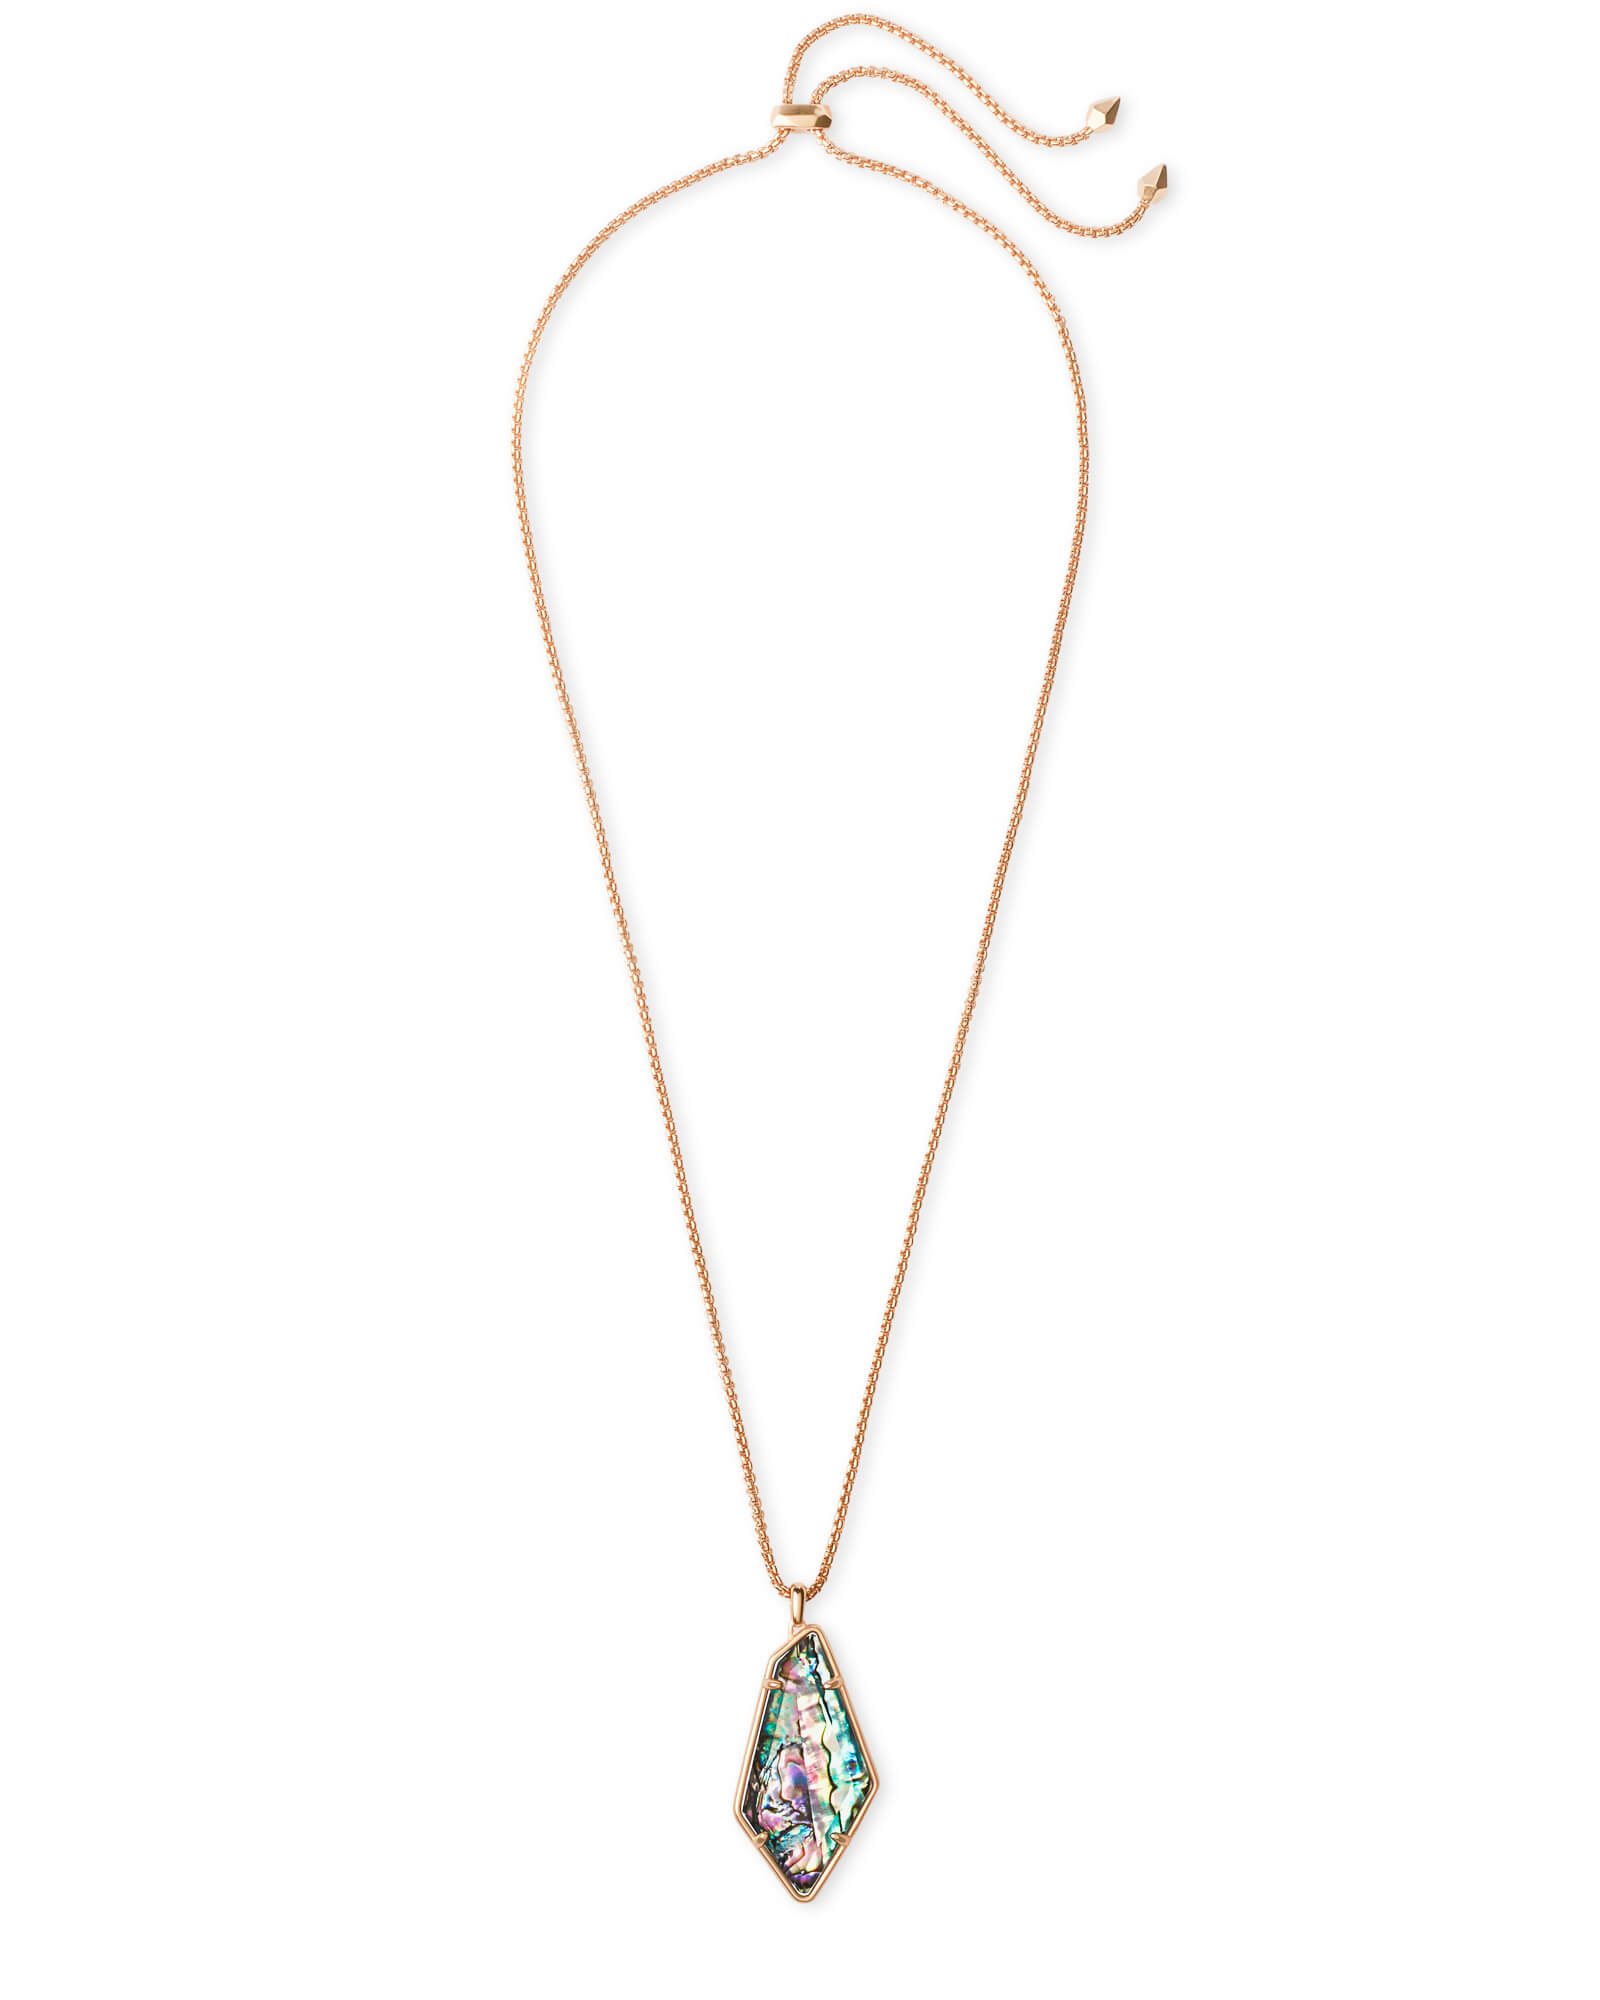 Lilith Rose Gold Long Pendant Necklace in Abalone Shell